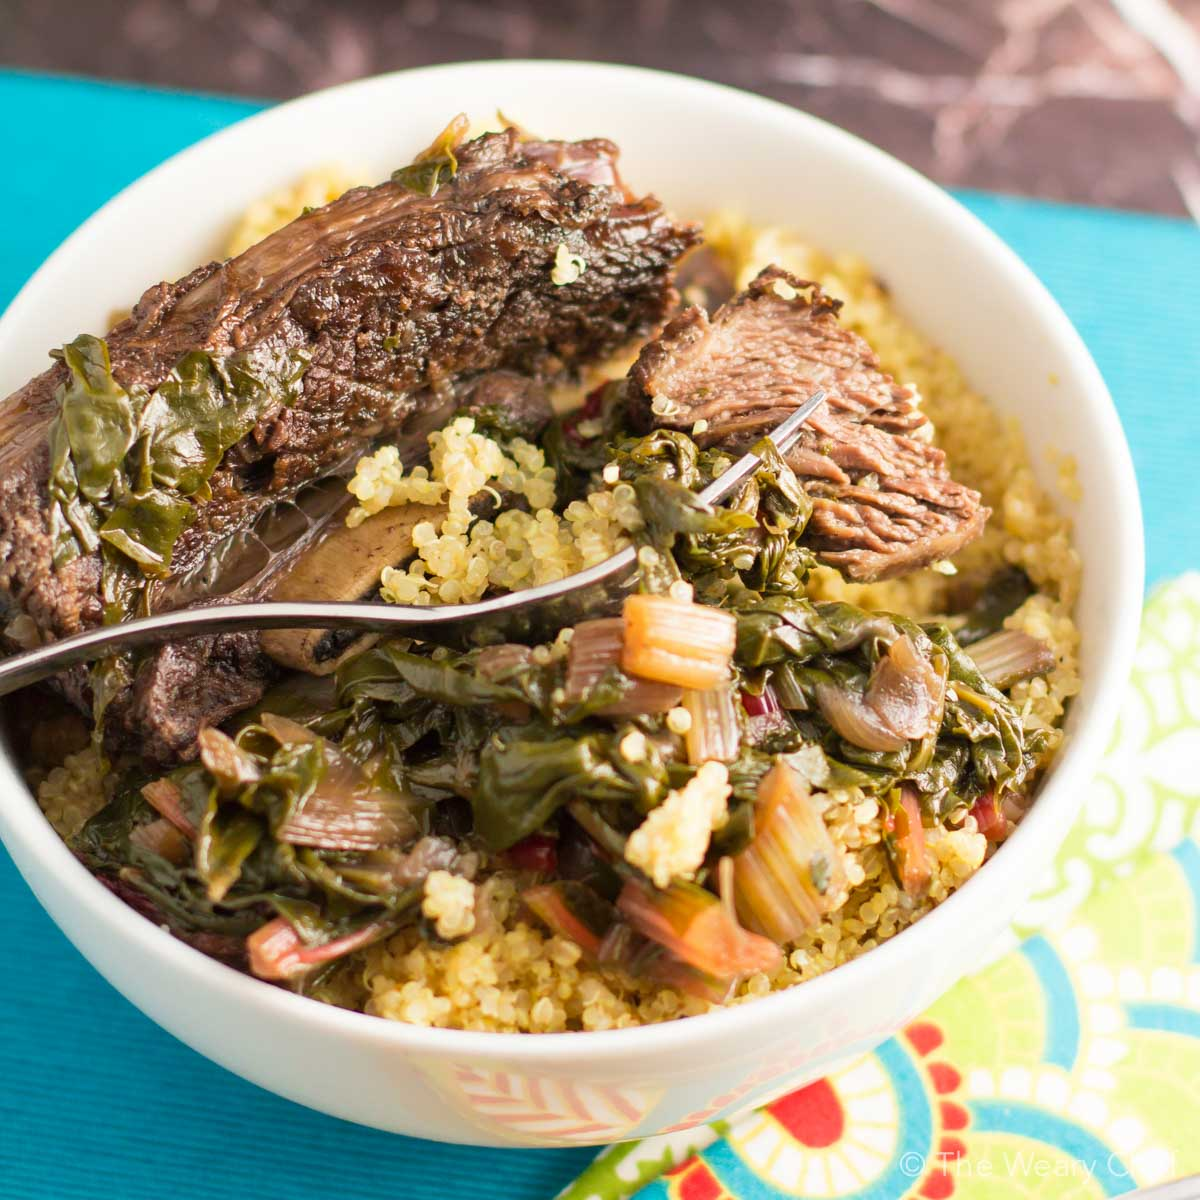 Stewing beef short ribs with chard over low heat makes for a succulent, easy dinner!